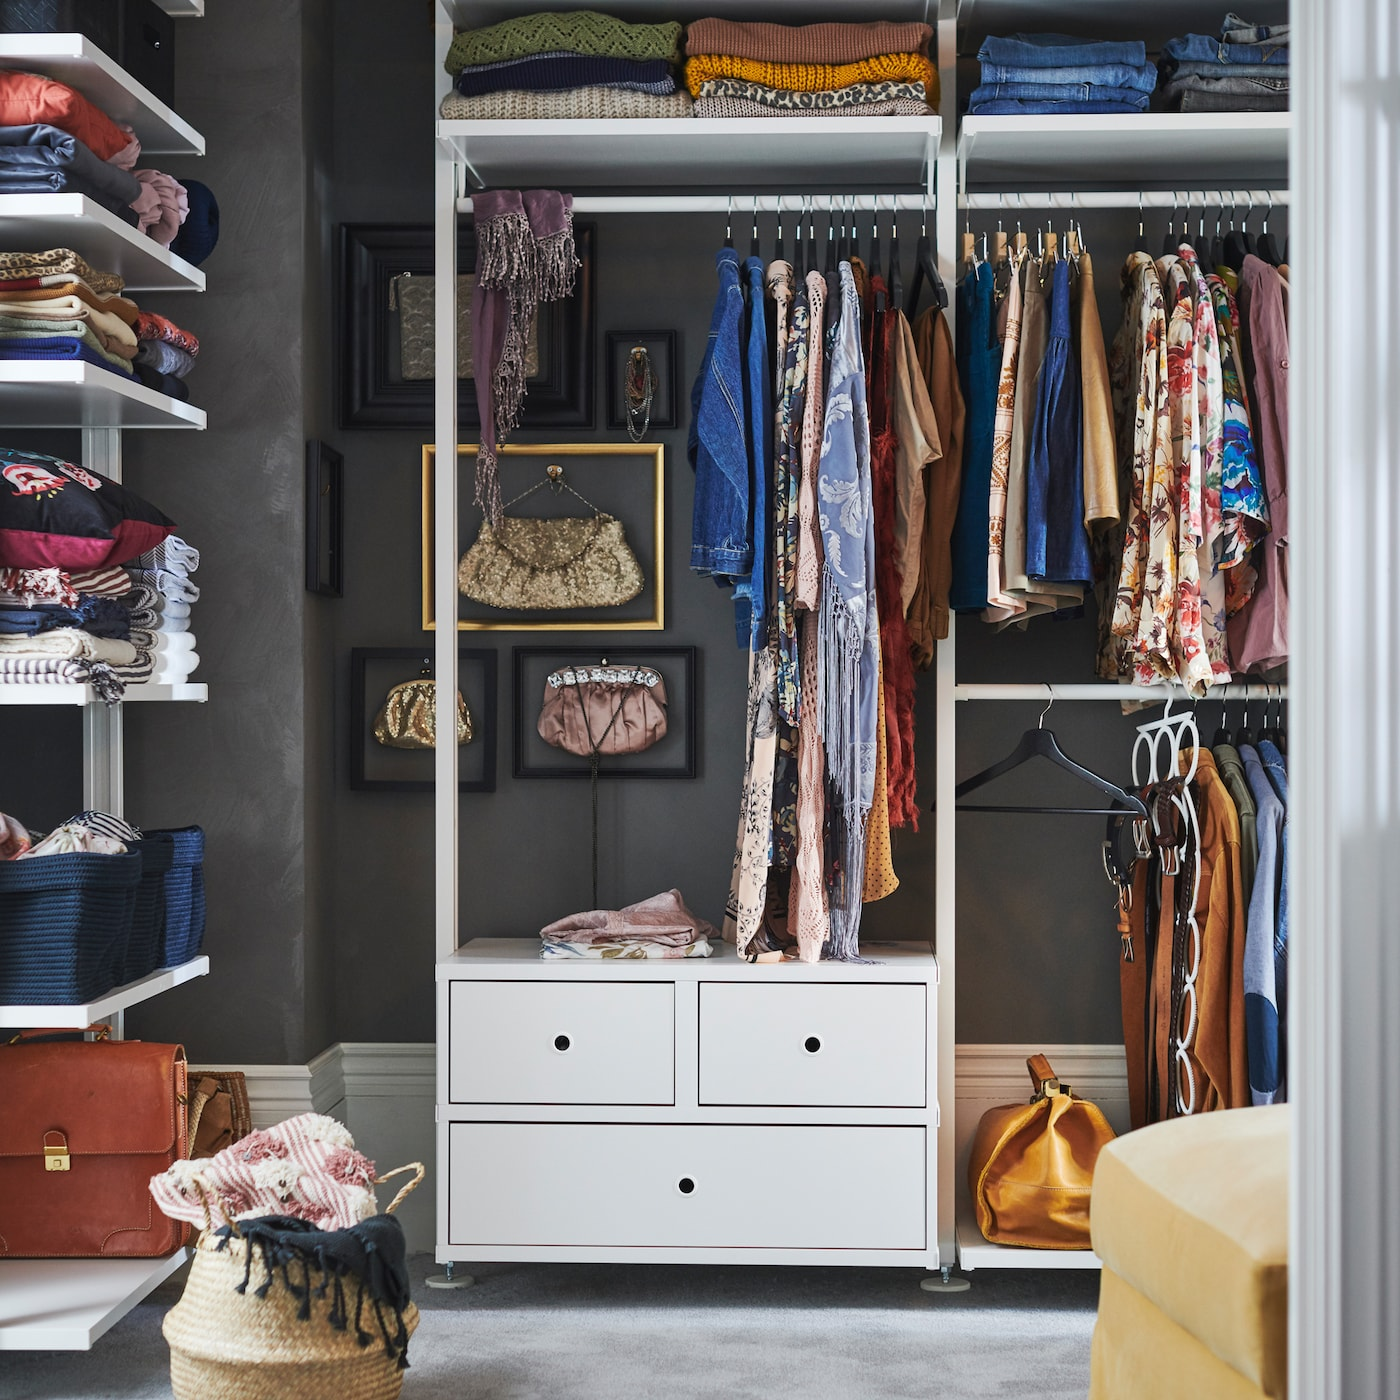 IKEA ELVARLI white open storage wardrobe solution, with clothes rails, closed drawers, and shelves.